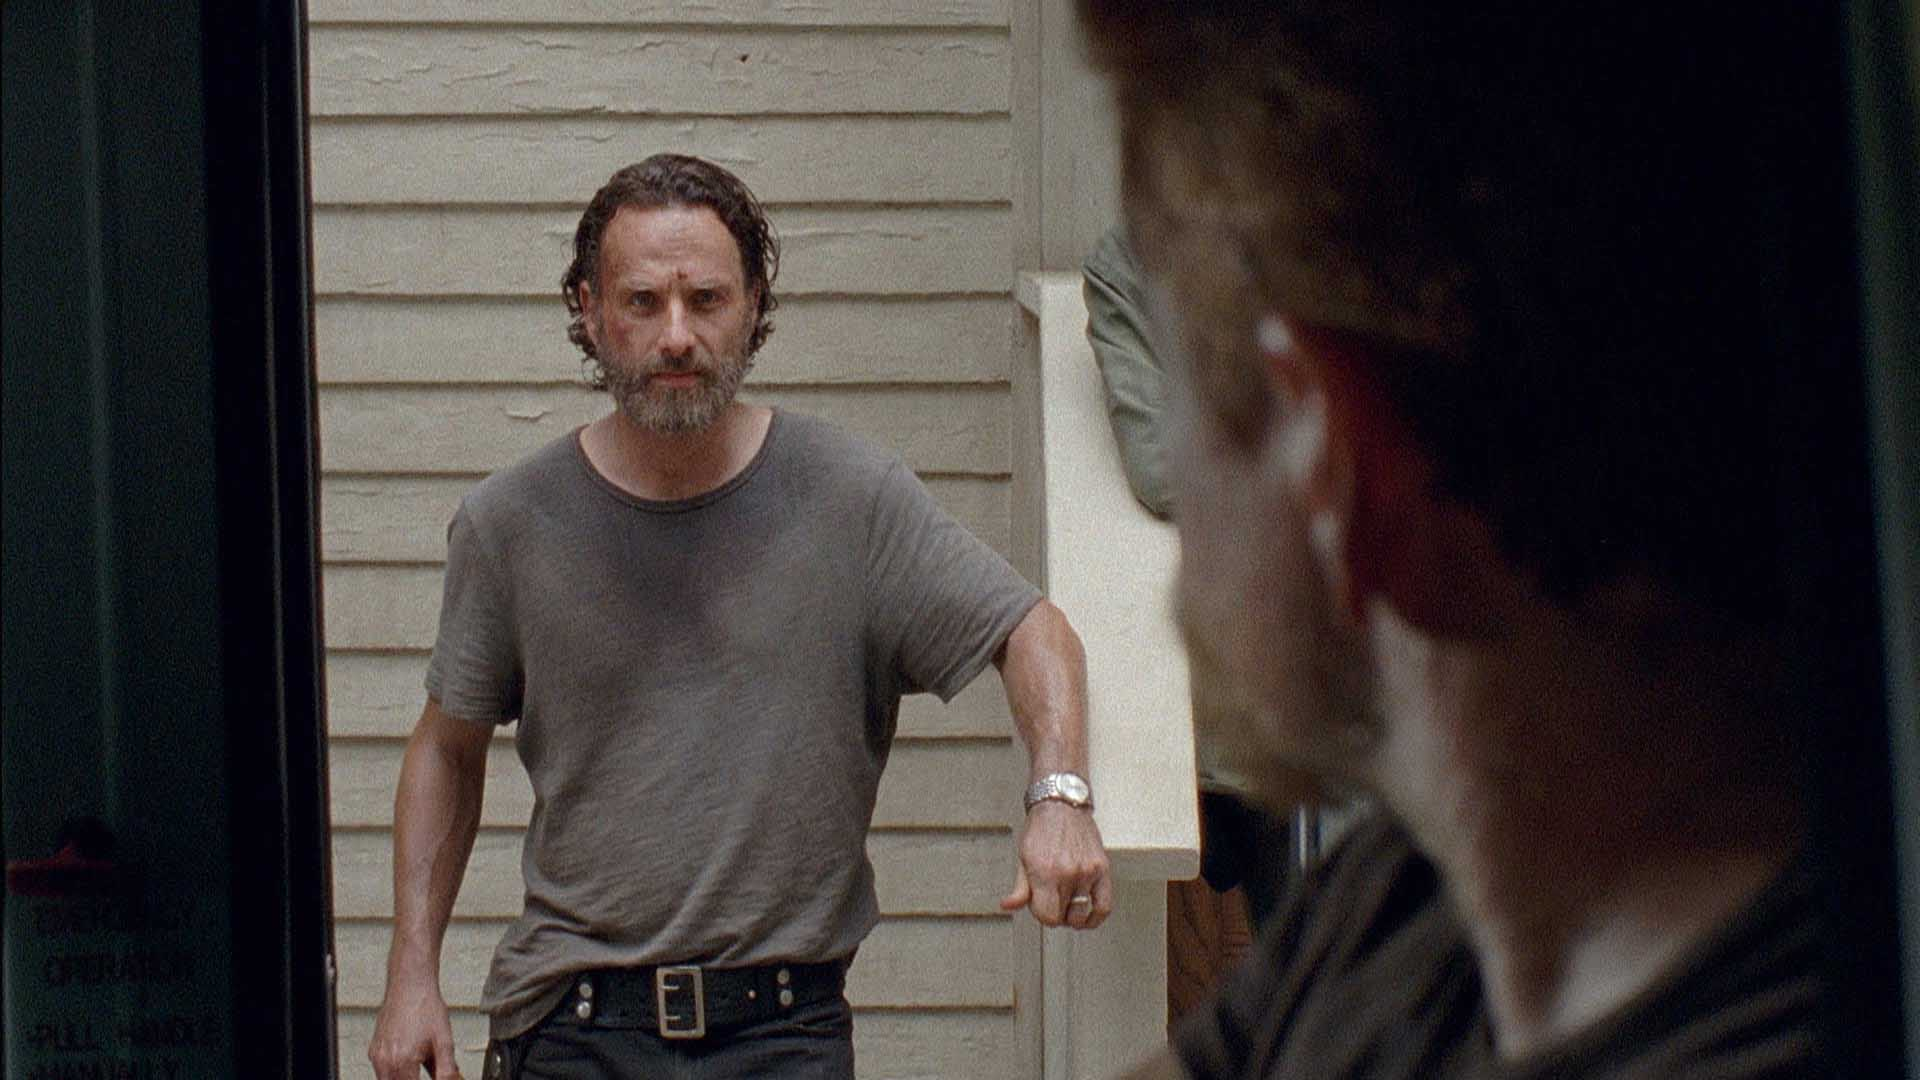 A Look at the Final Episodes of Season 5: The Walking Dead